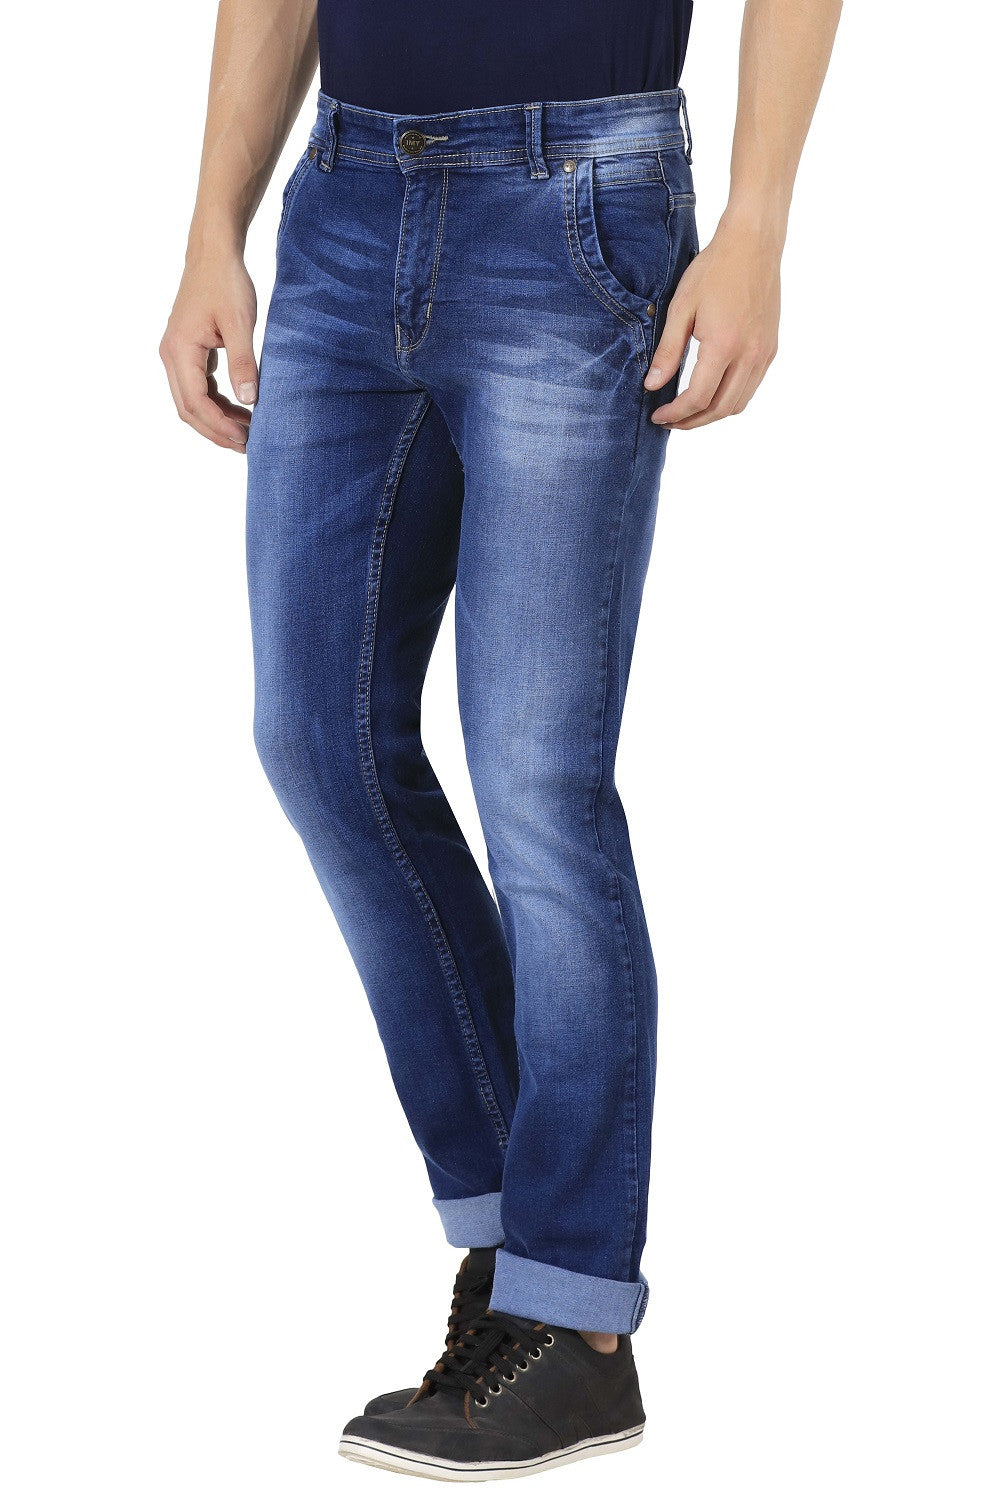 IMYOUNG Blue Slim Fit Jeans